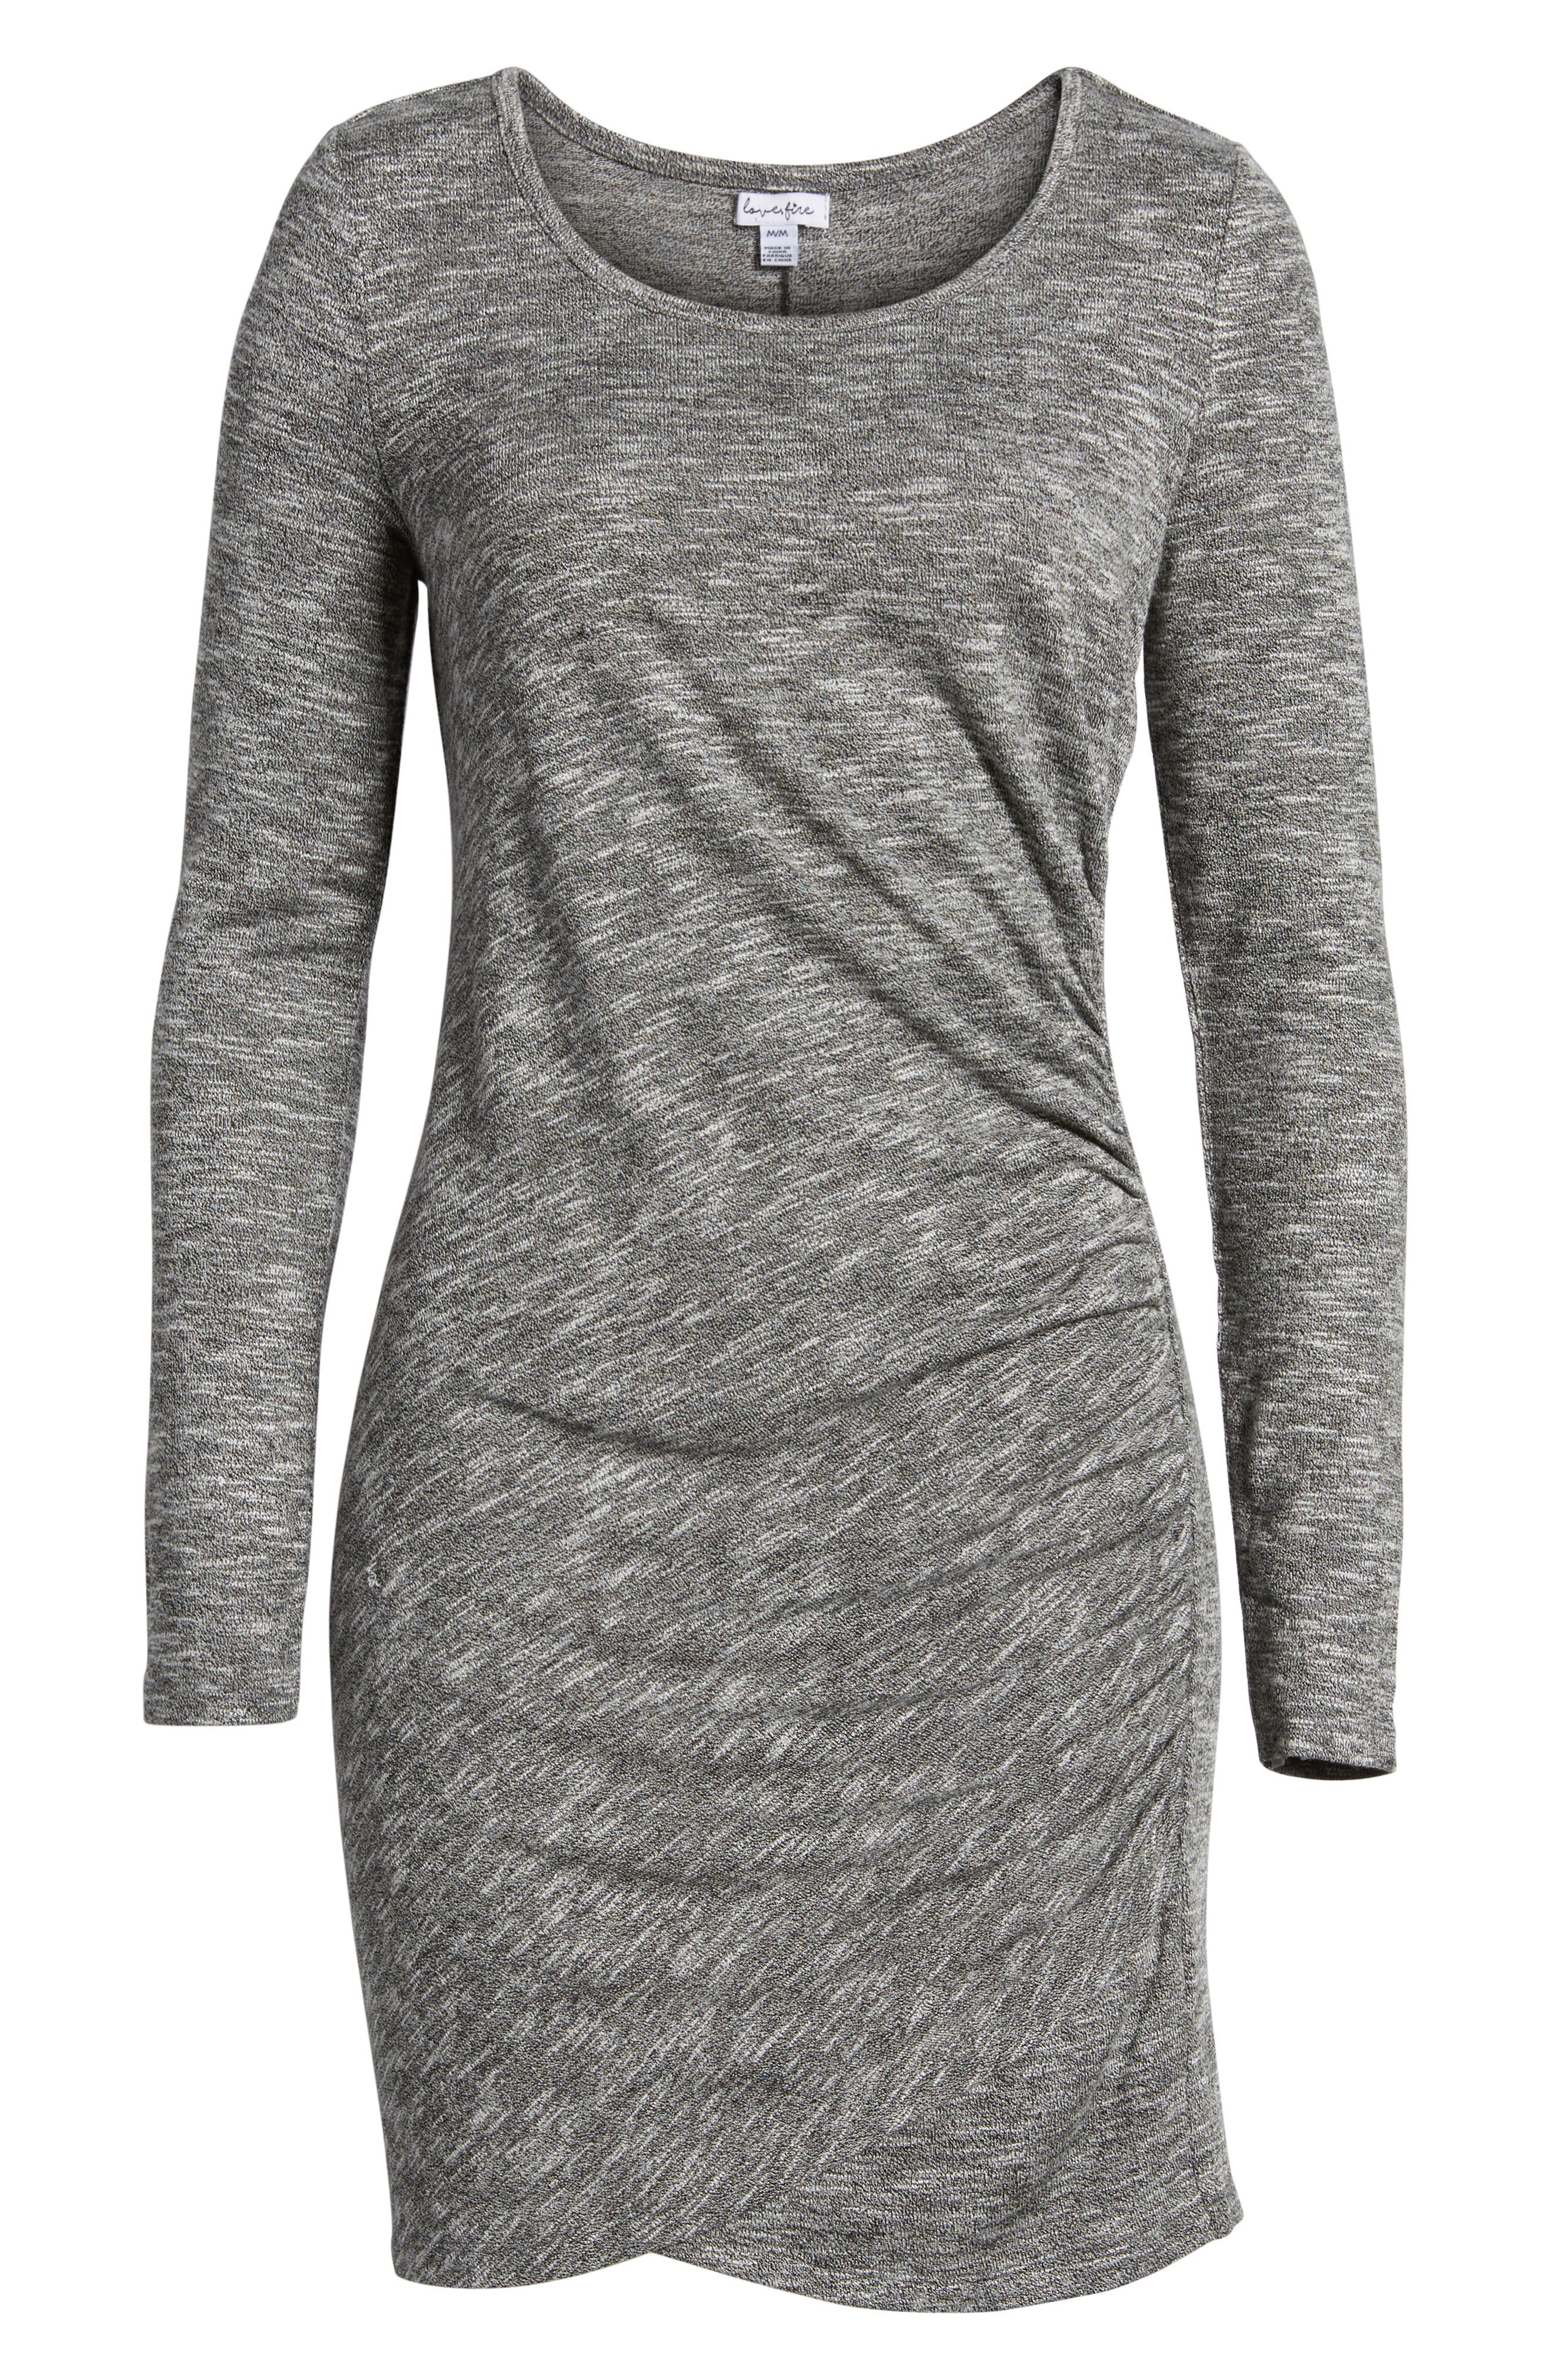 Ruched Knit Dress,                             Alternate thumbnail 6, color,                             020